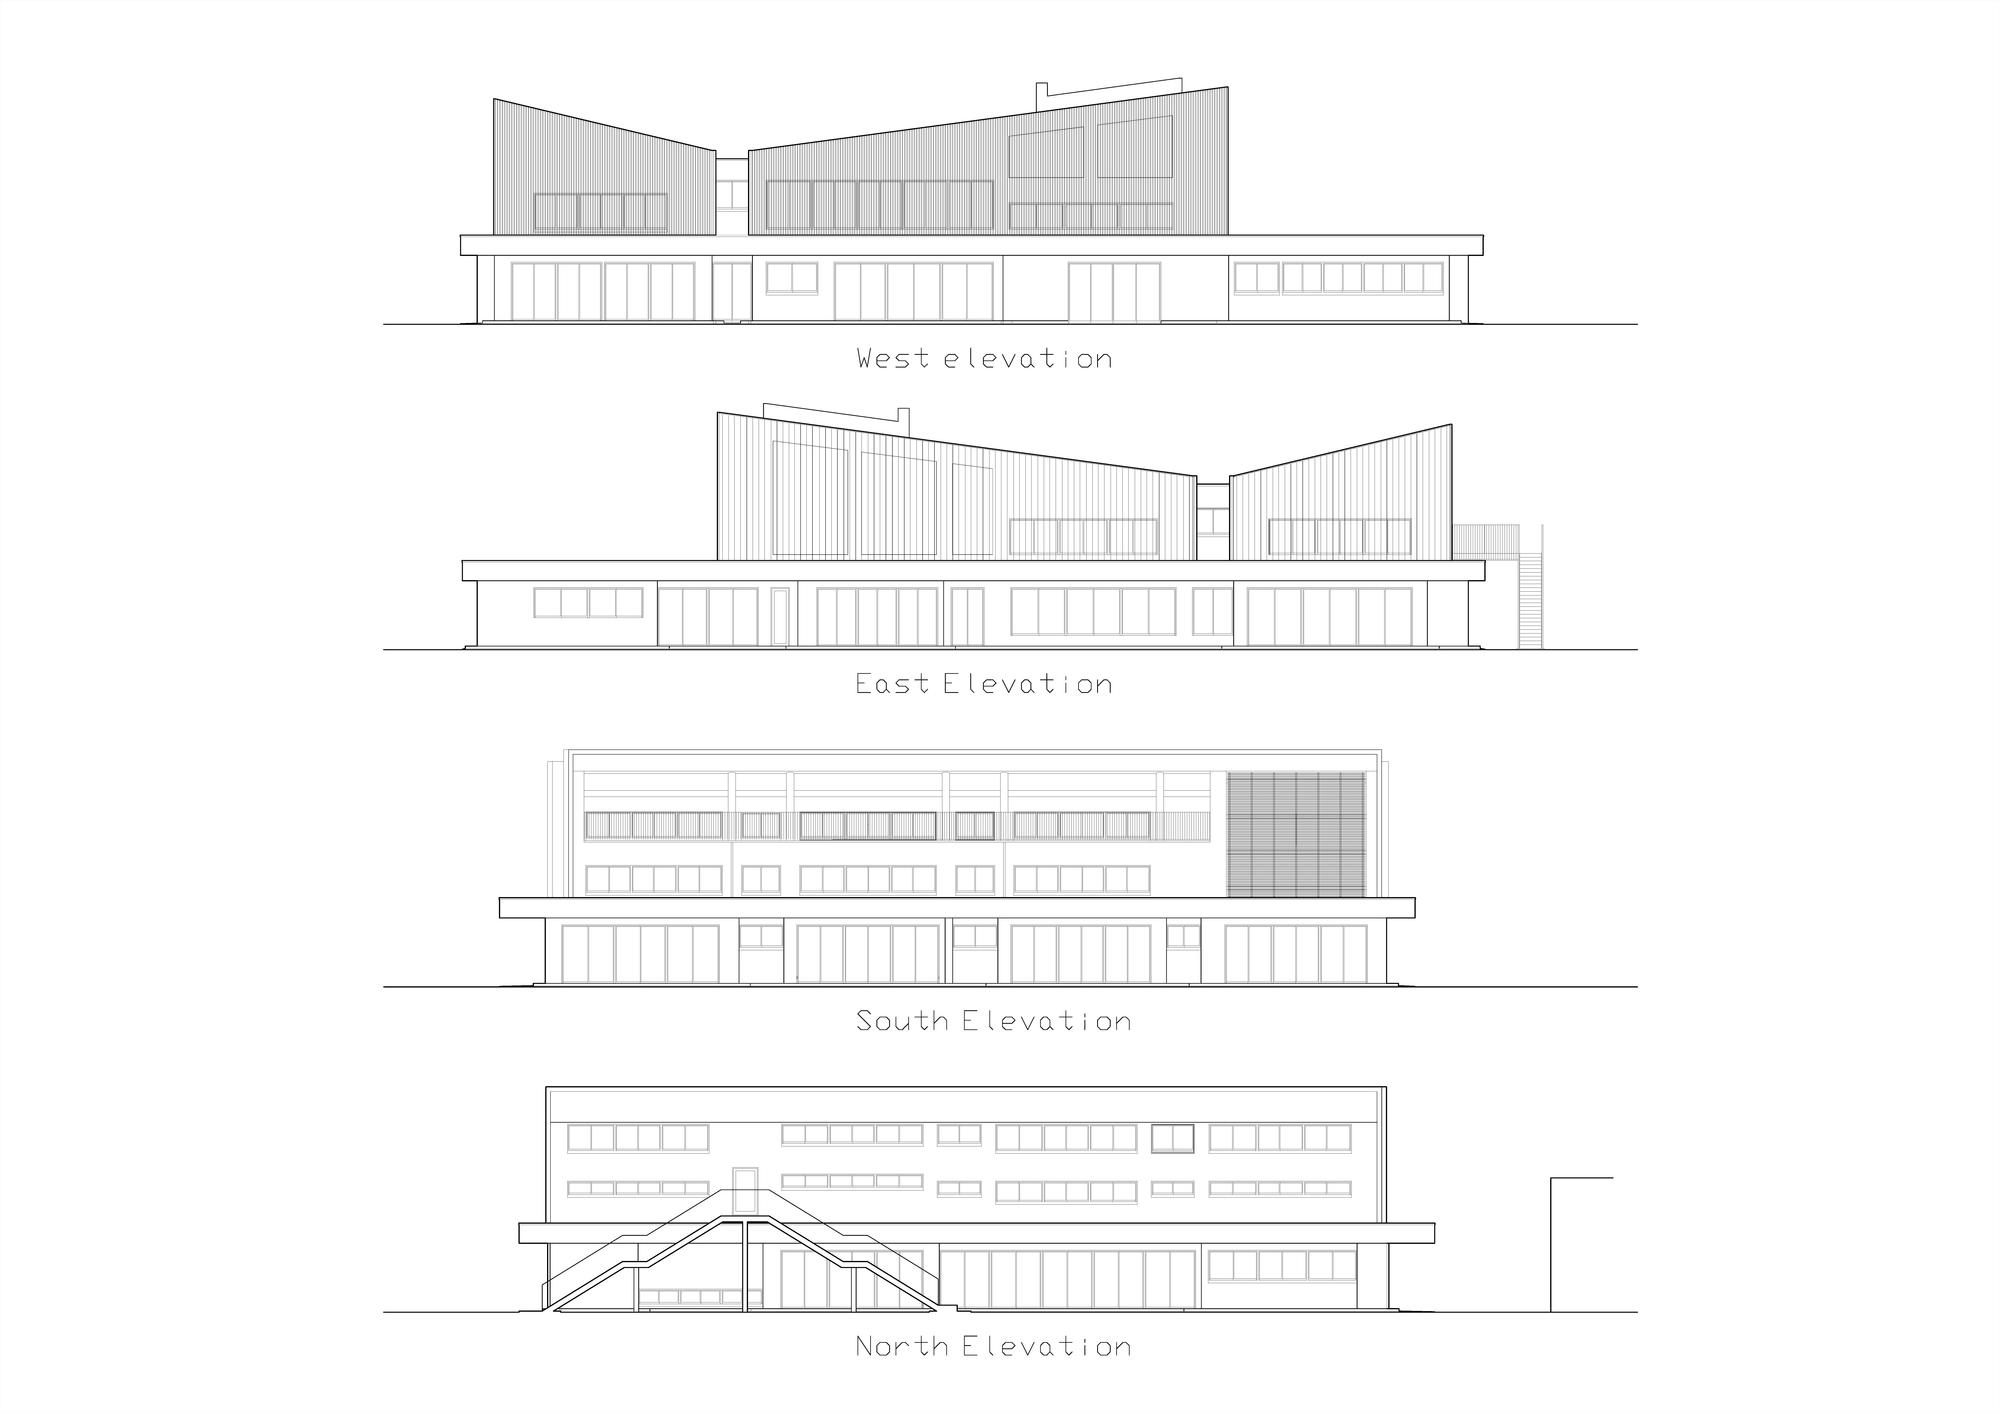 11_ELEVATION-page-001.jpg